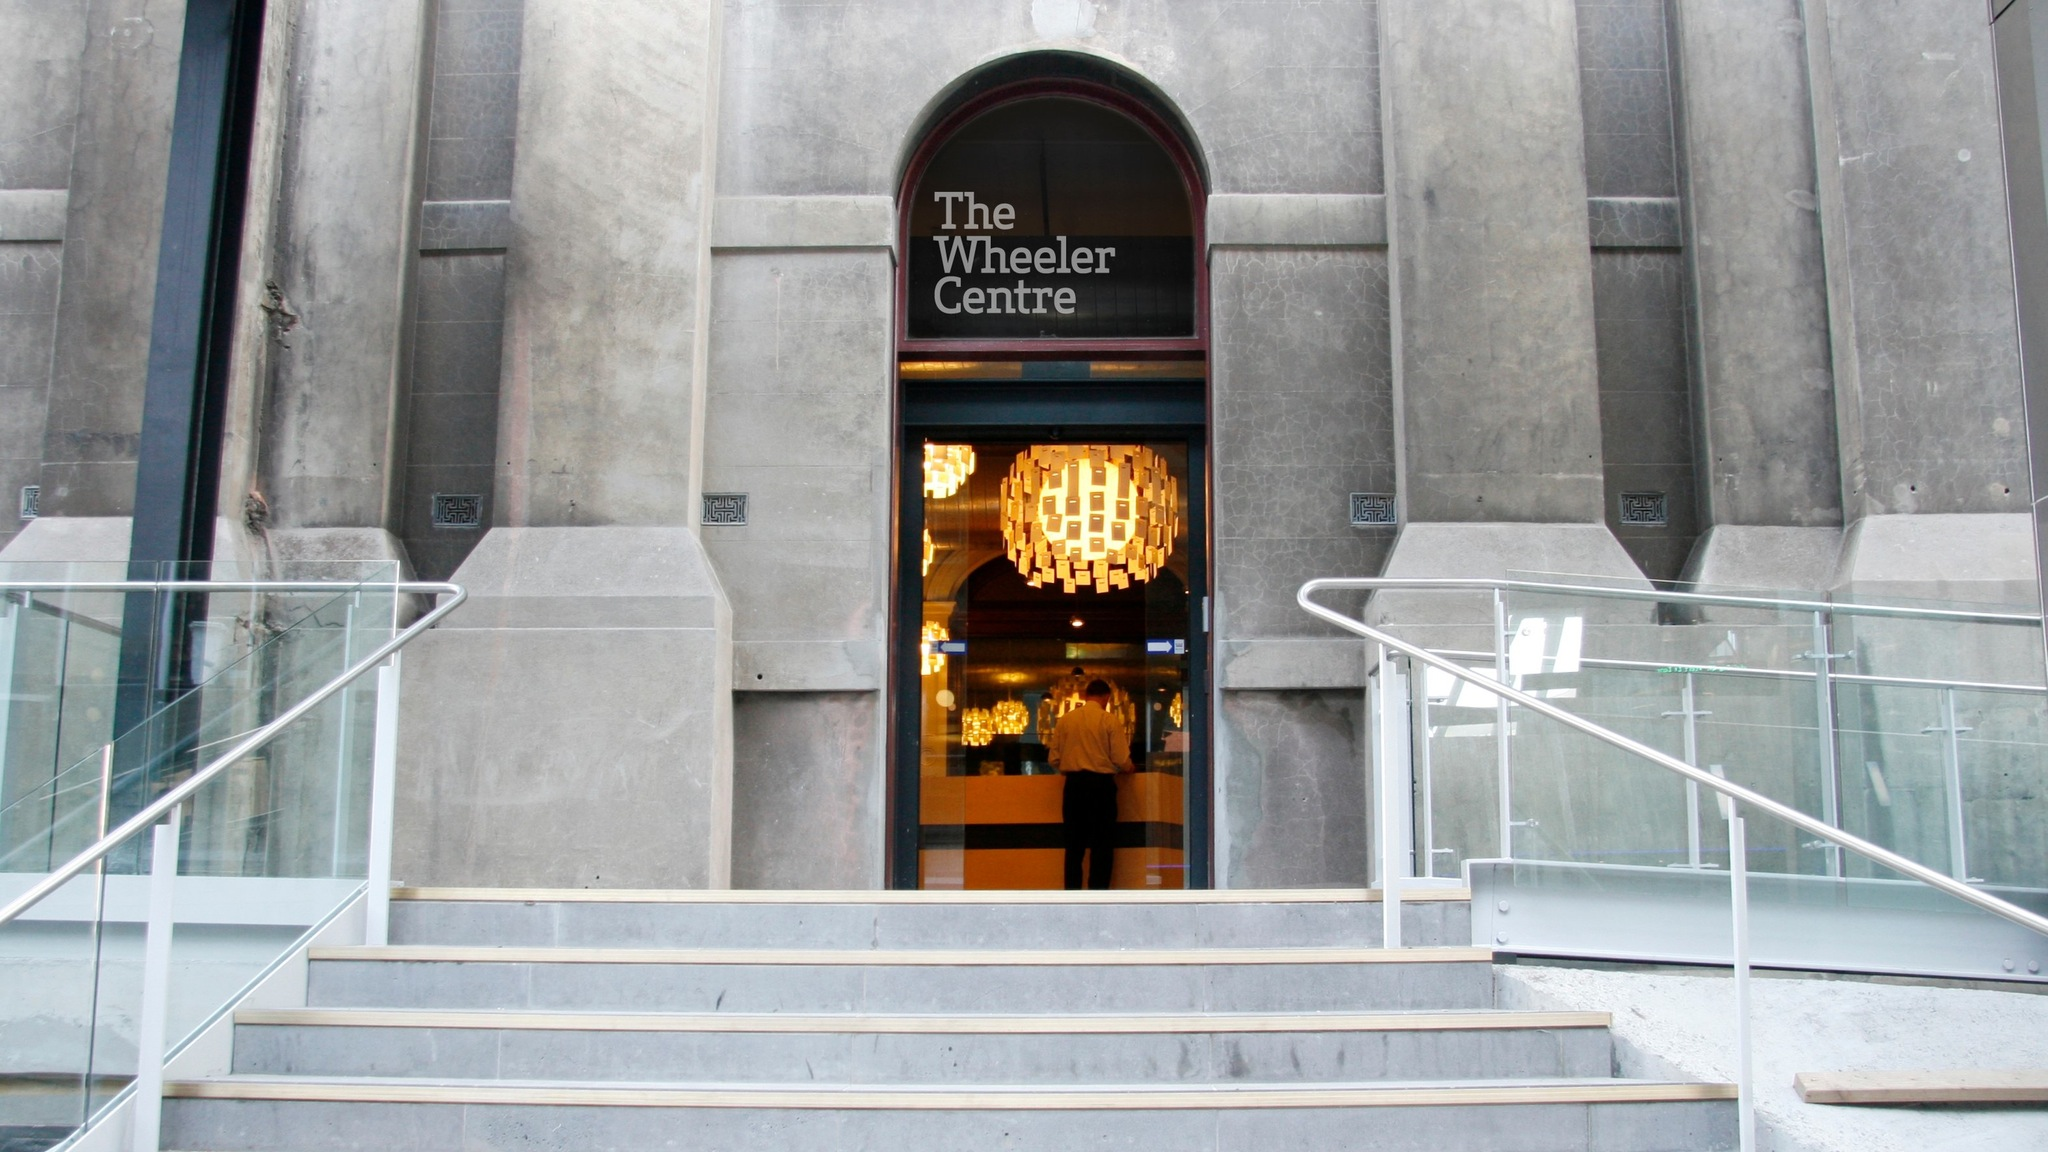 Wheeler Centre entrance